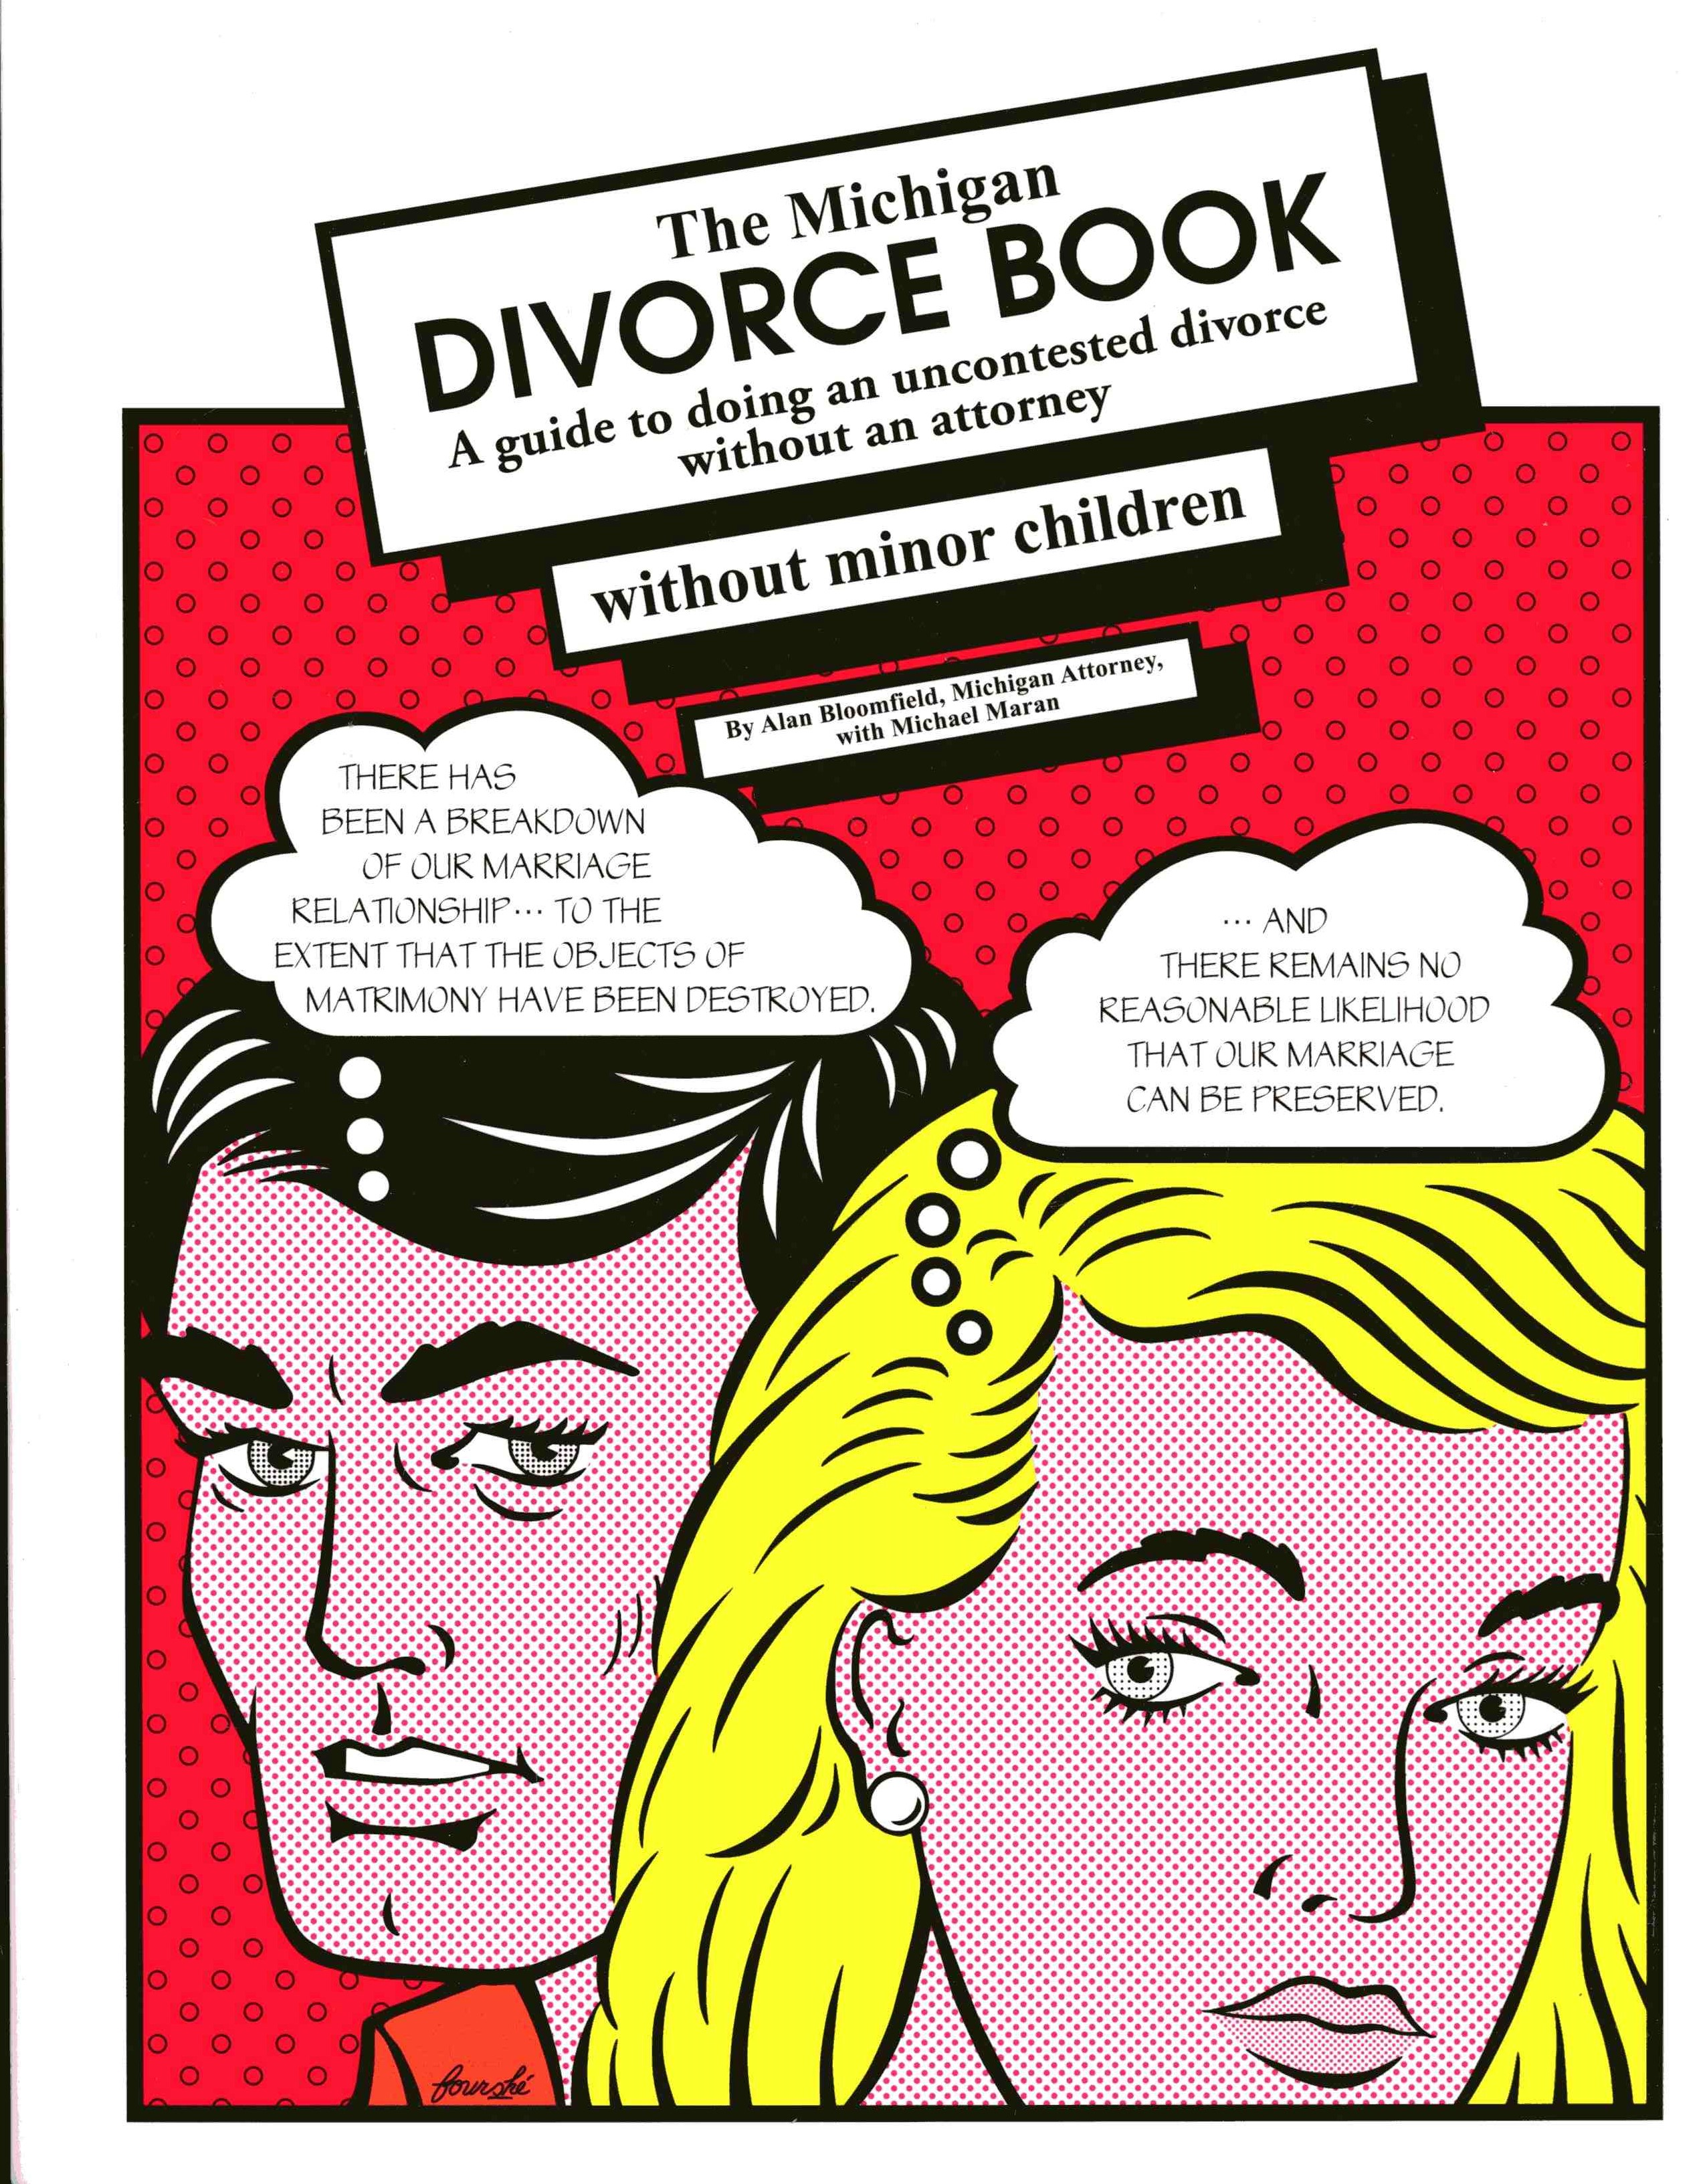 The Michigan Divorce Book without Minor Children